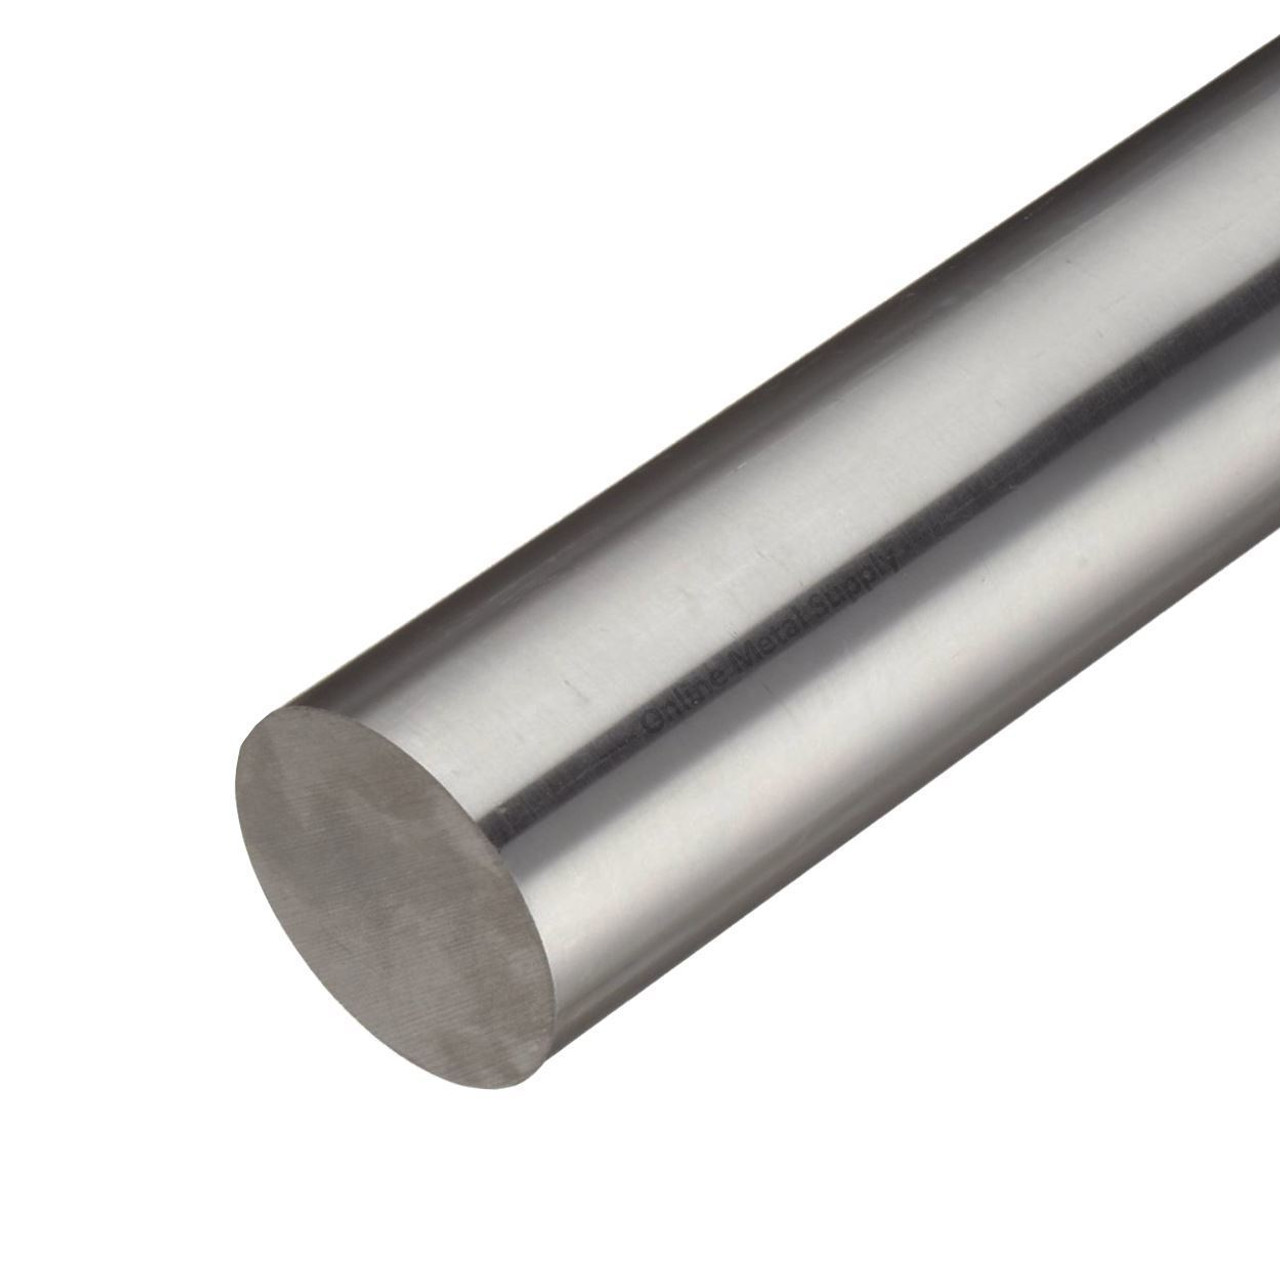 1.125 (1-1/8 inch) x 36 inches, 17-4 Cond A CF Stainless Steel Round Rod